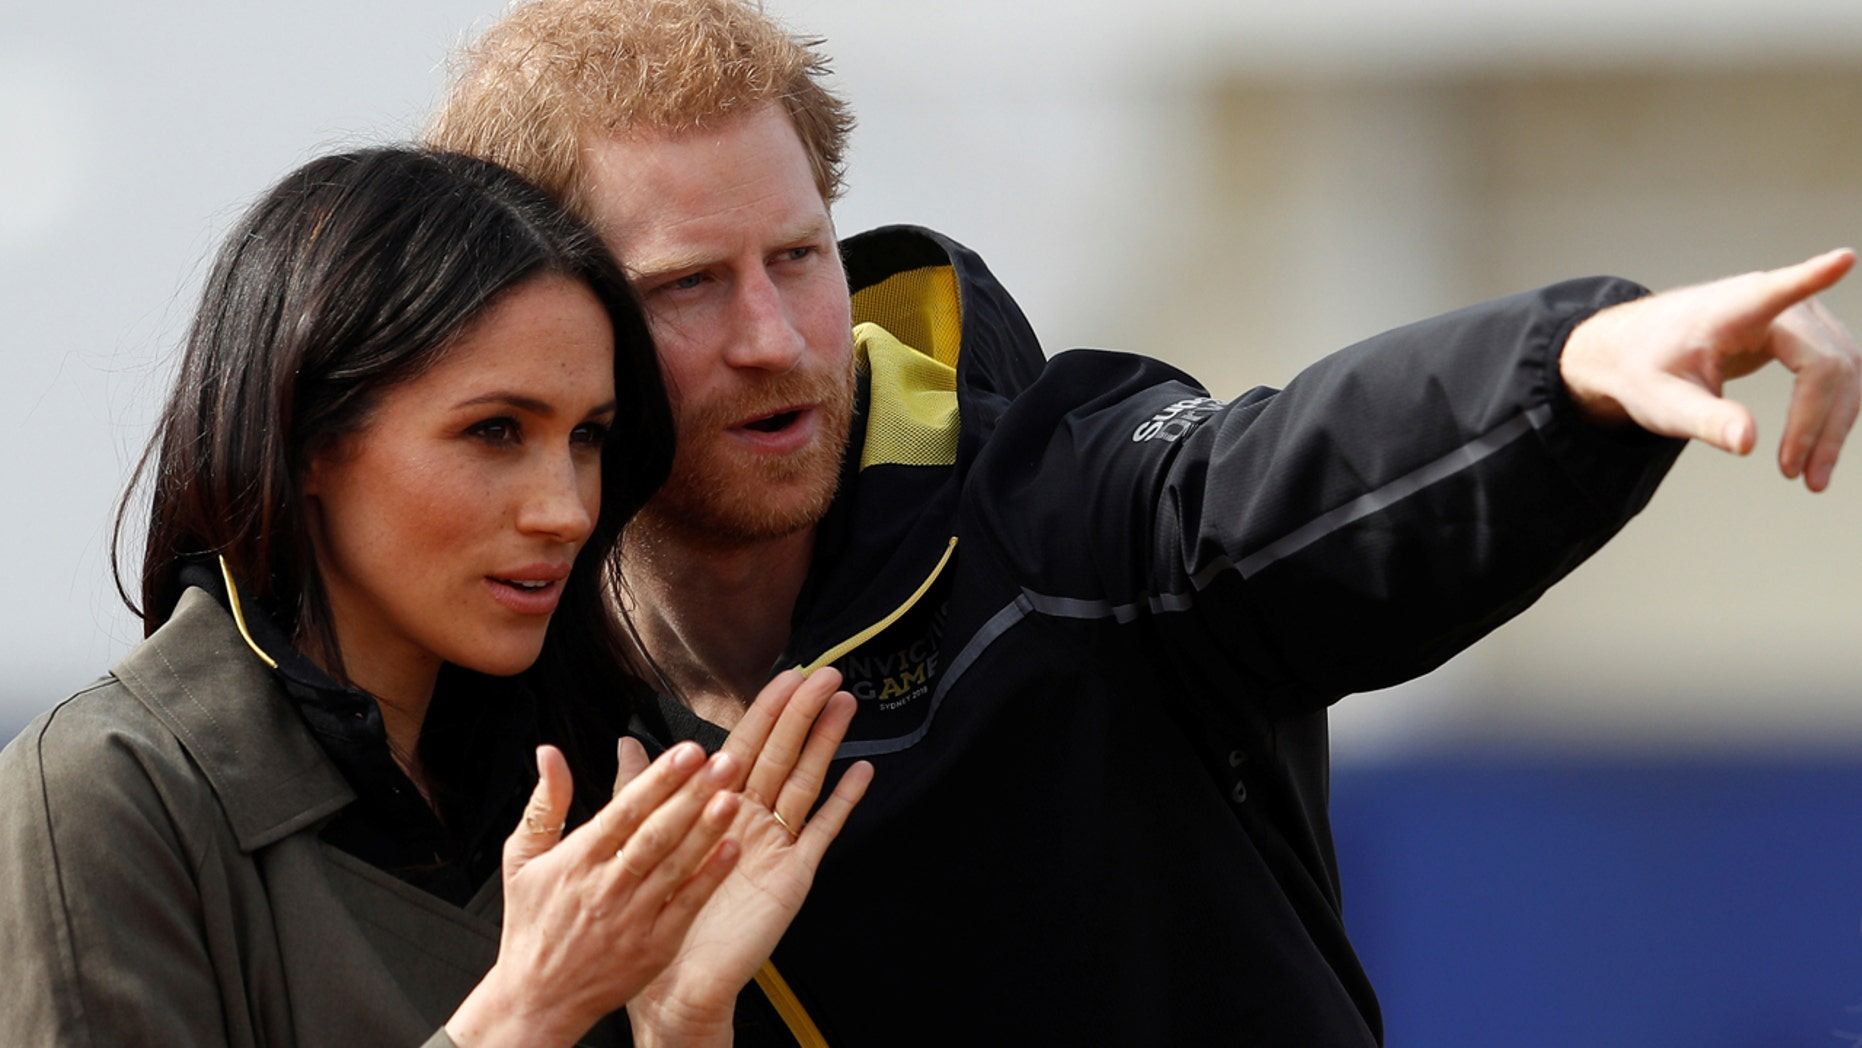 Britain's Prince Harry, Patron of the Invictus Games Foundation, and Meghan Markle watch athletes at the team trials for the Invictus Games Sydney 2018 at the University of Bath Sports Training Village in Bath, Britain, April 6, 2018.